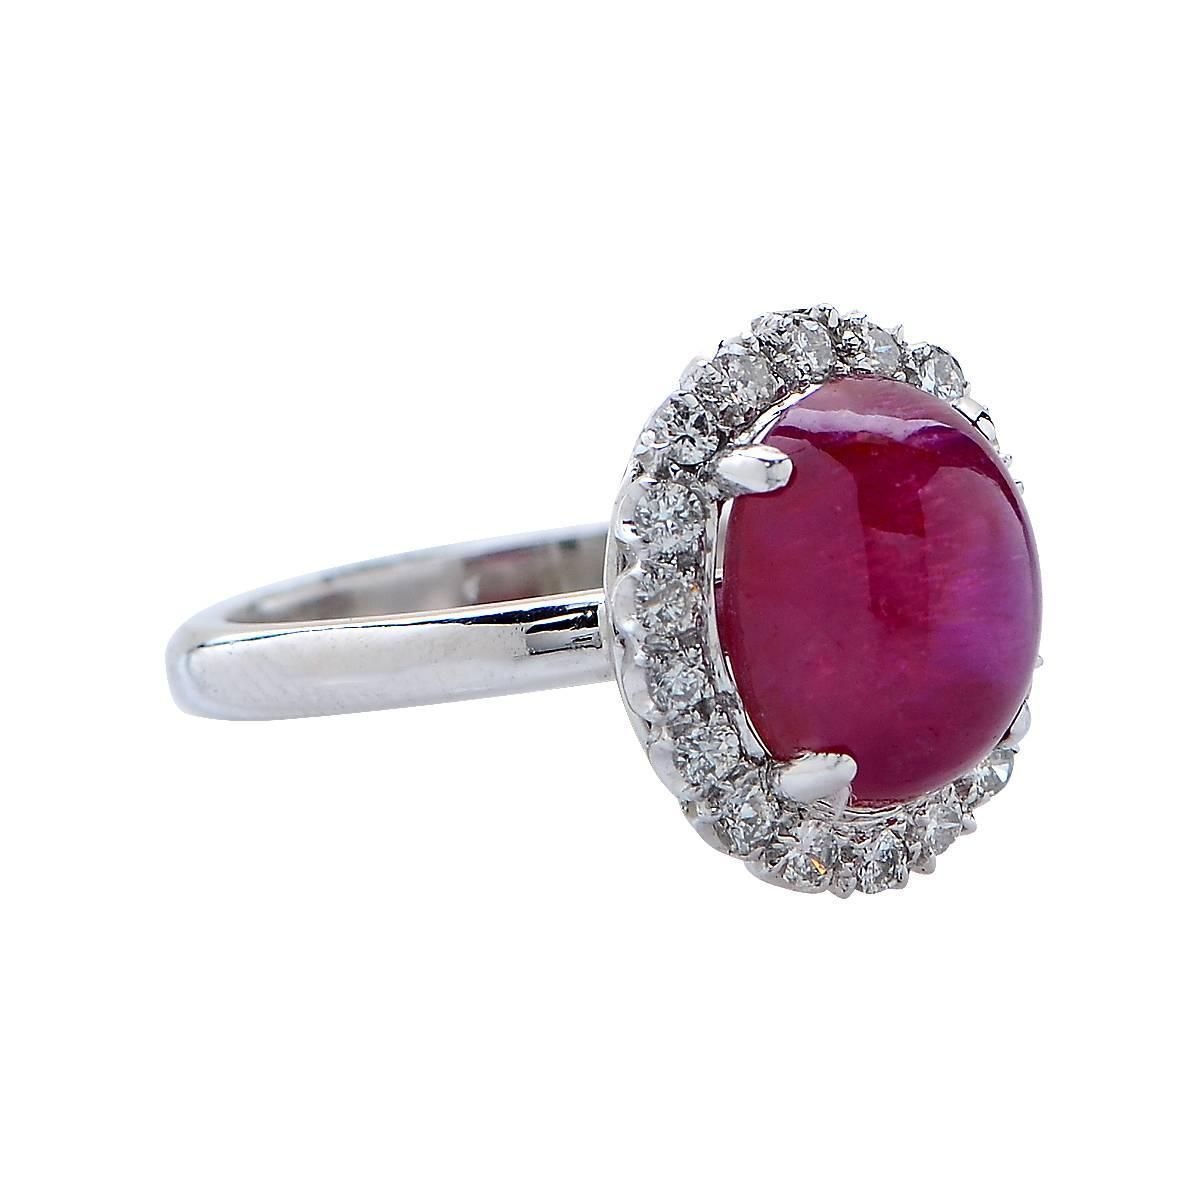 3.25 Carat Star Ruby Diamond Platinum Ring | From a unique collection of vintage fashion rings at https://www.1stdibs.com/jewelry/rings/fashion-rings/